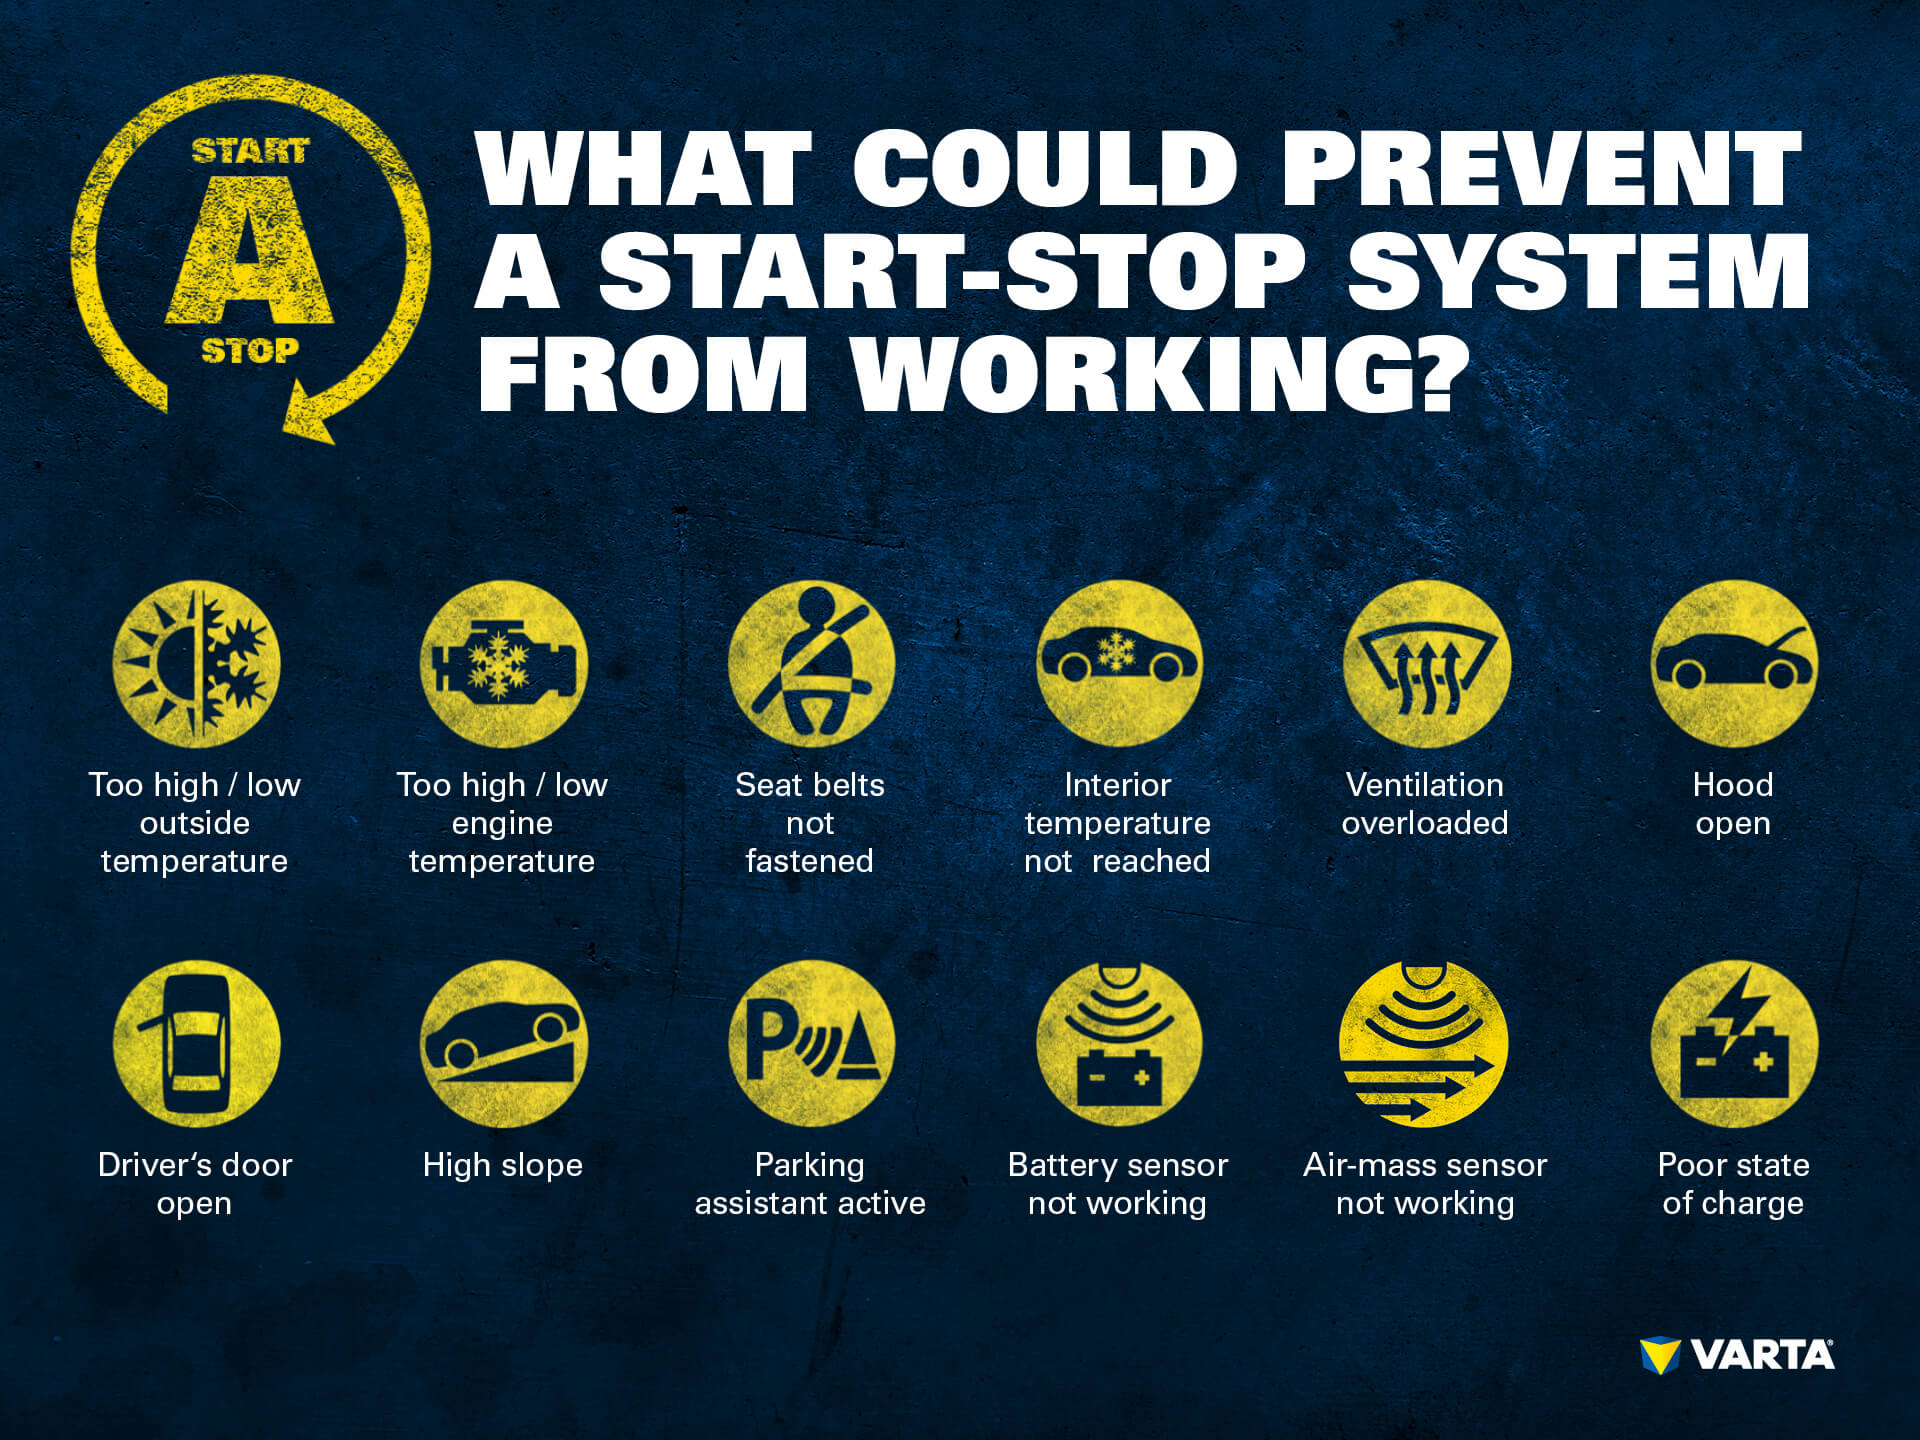 Start stop not working - these can be reasons